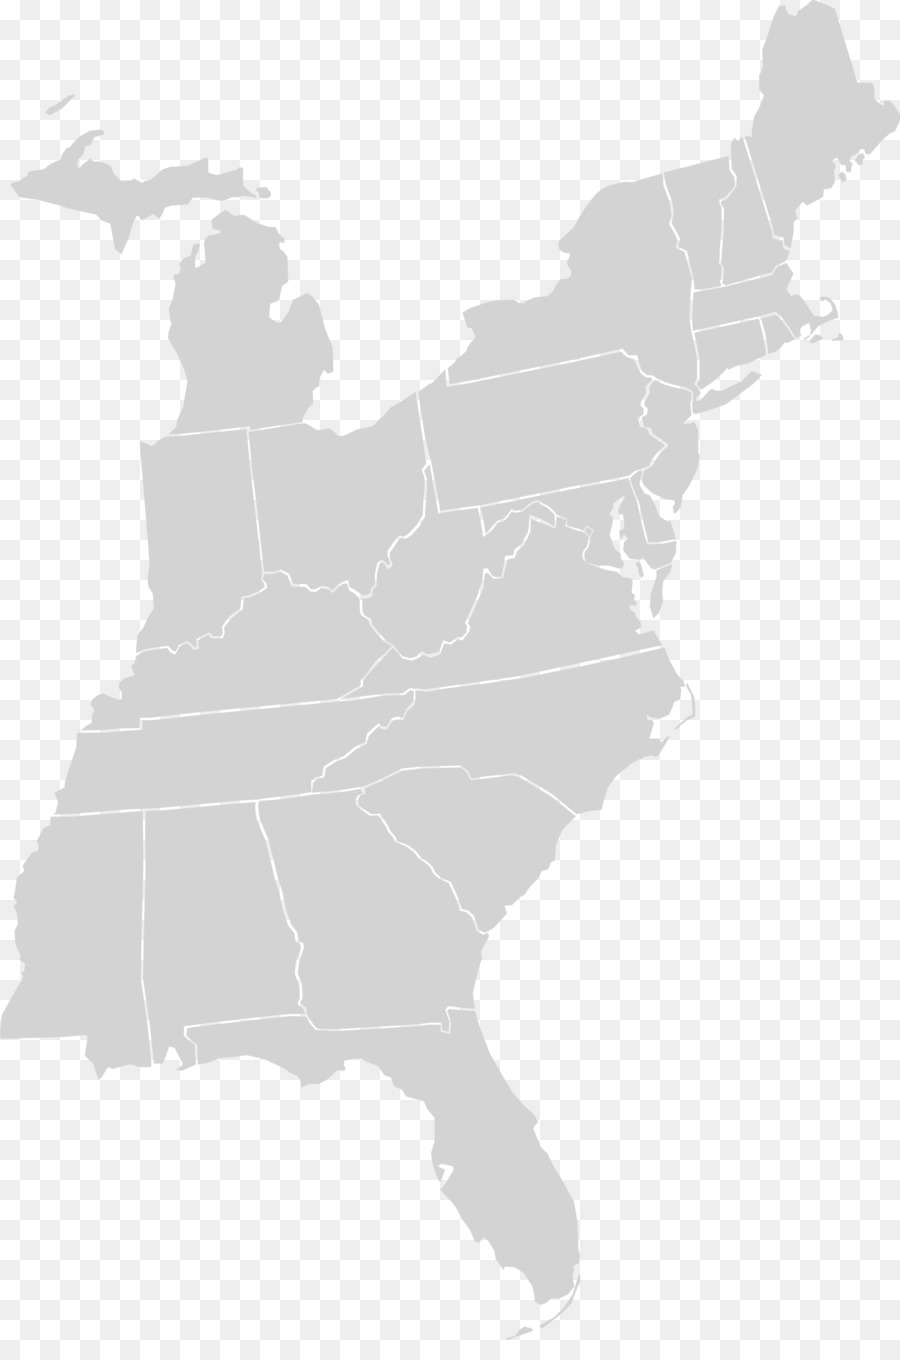 United states blank map map projection world map west png download united states blank map map projection world map west gumiabroncs Gallery